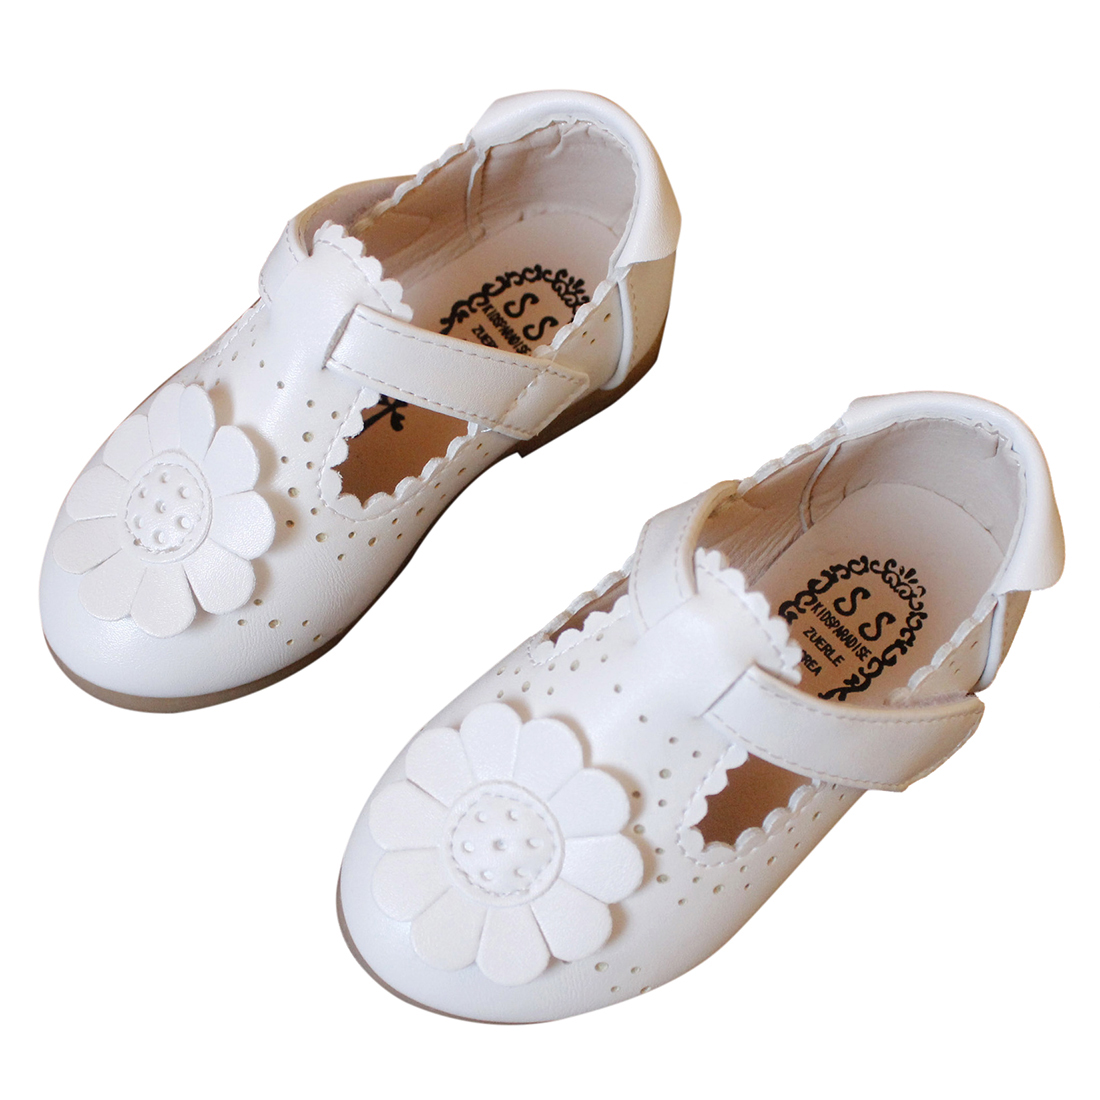 Kids Autumn Spring Fashion Flower Shoes For Girl Leather Solid Hollow Casual Pretty Girls Shoes(White,Size:25) ...